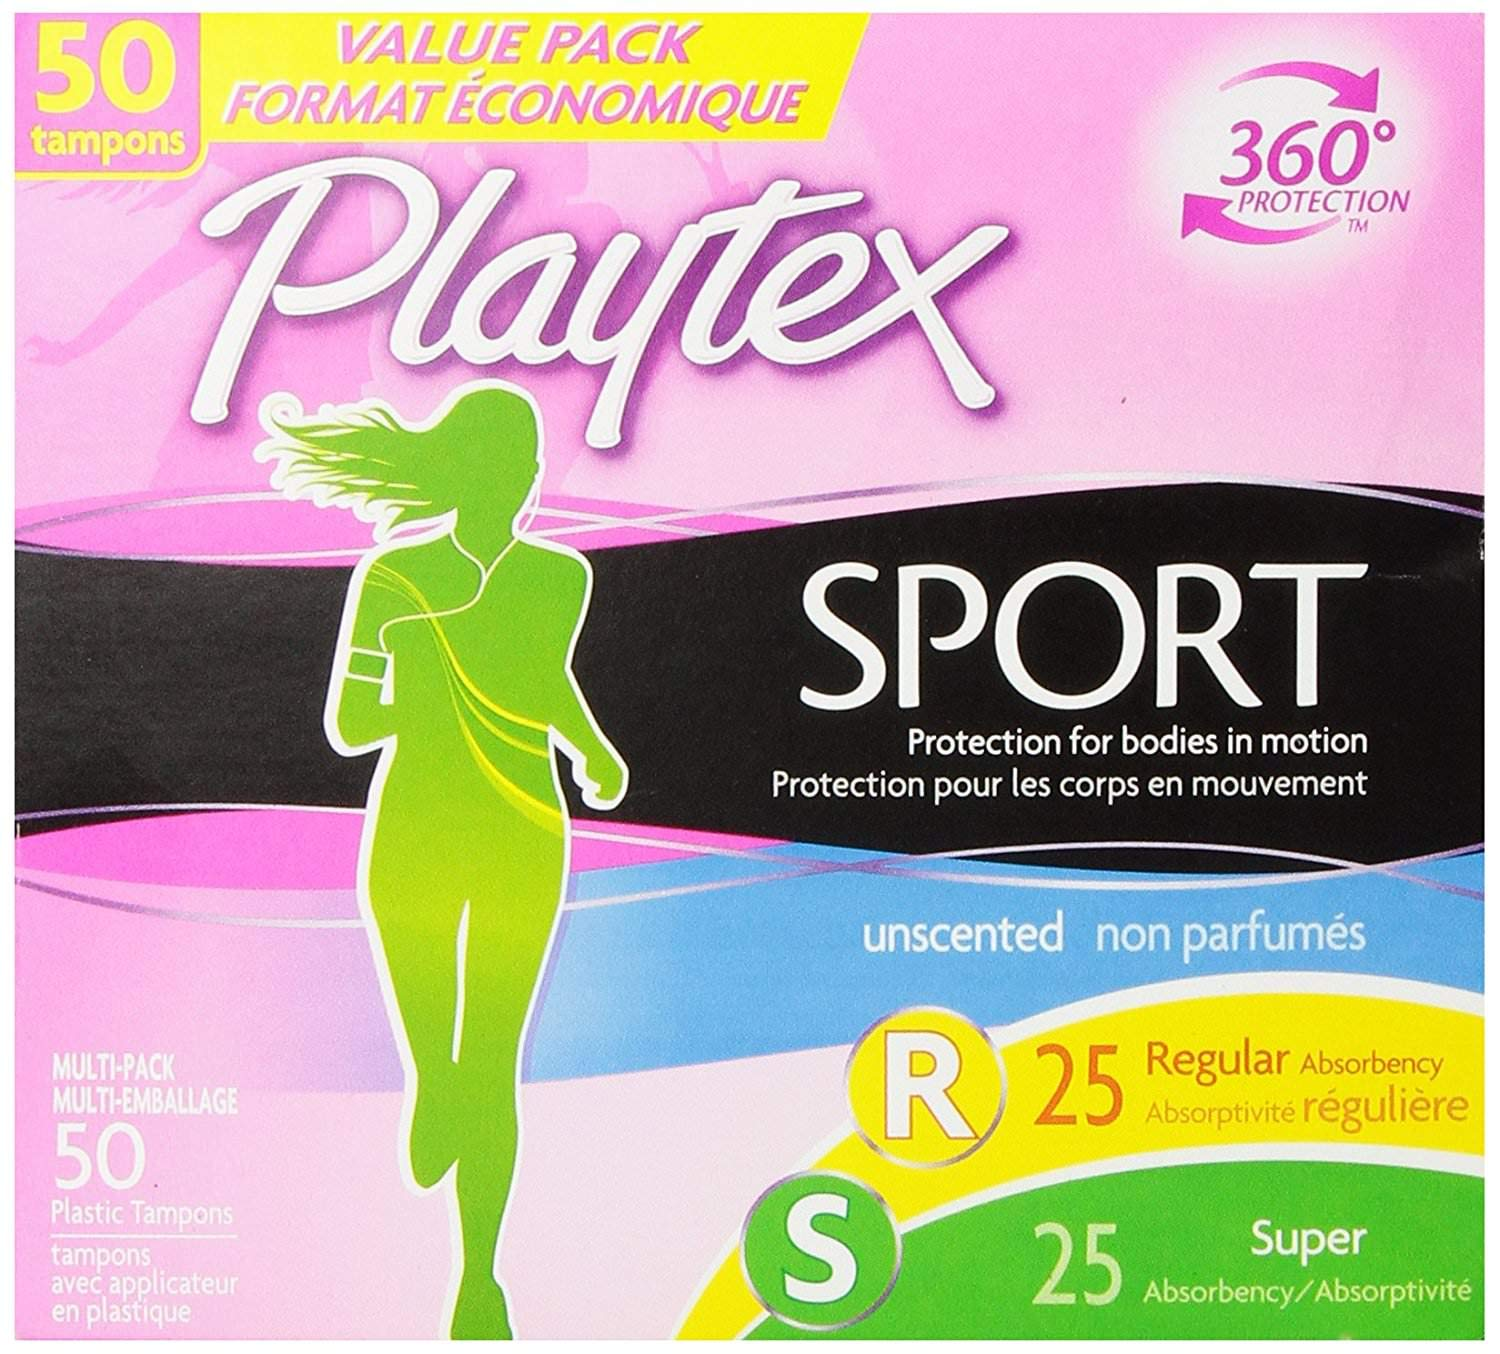 Playtex Sport Tampons with Flex-Fit Technology Regular and Super Multi-Pack Unscented, 150 Tampons